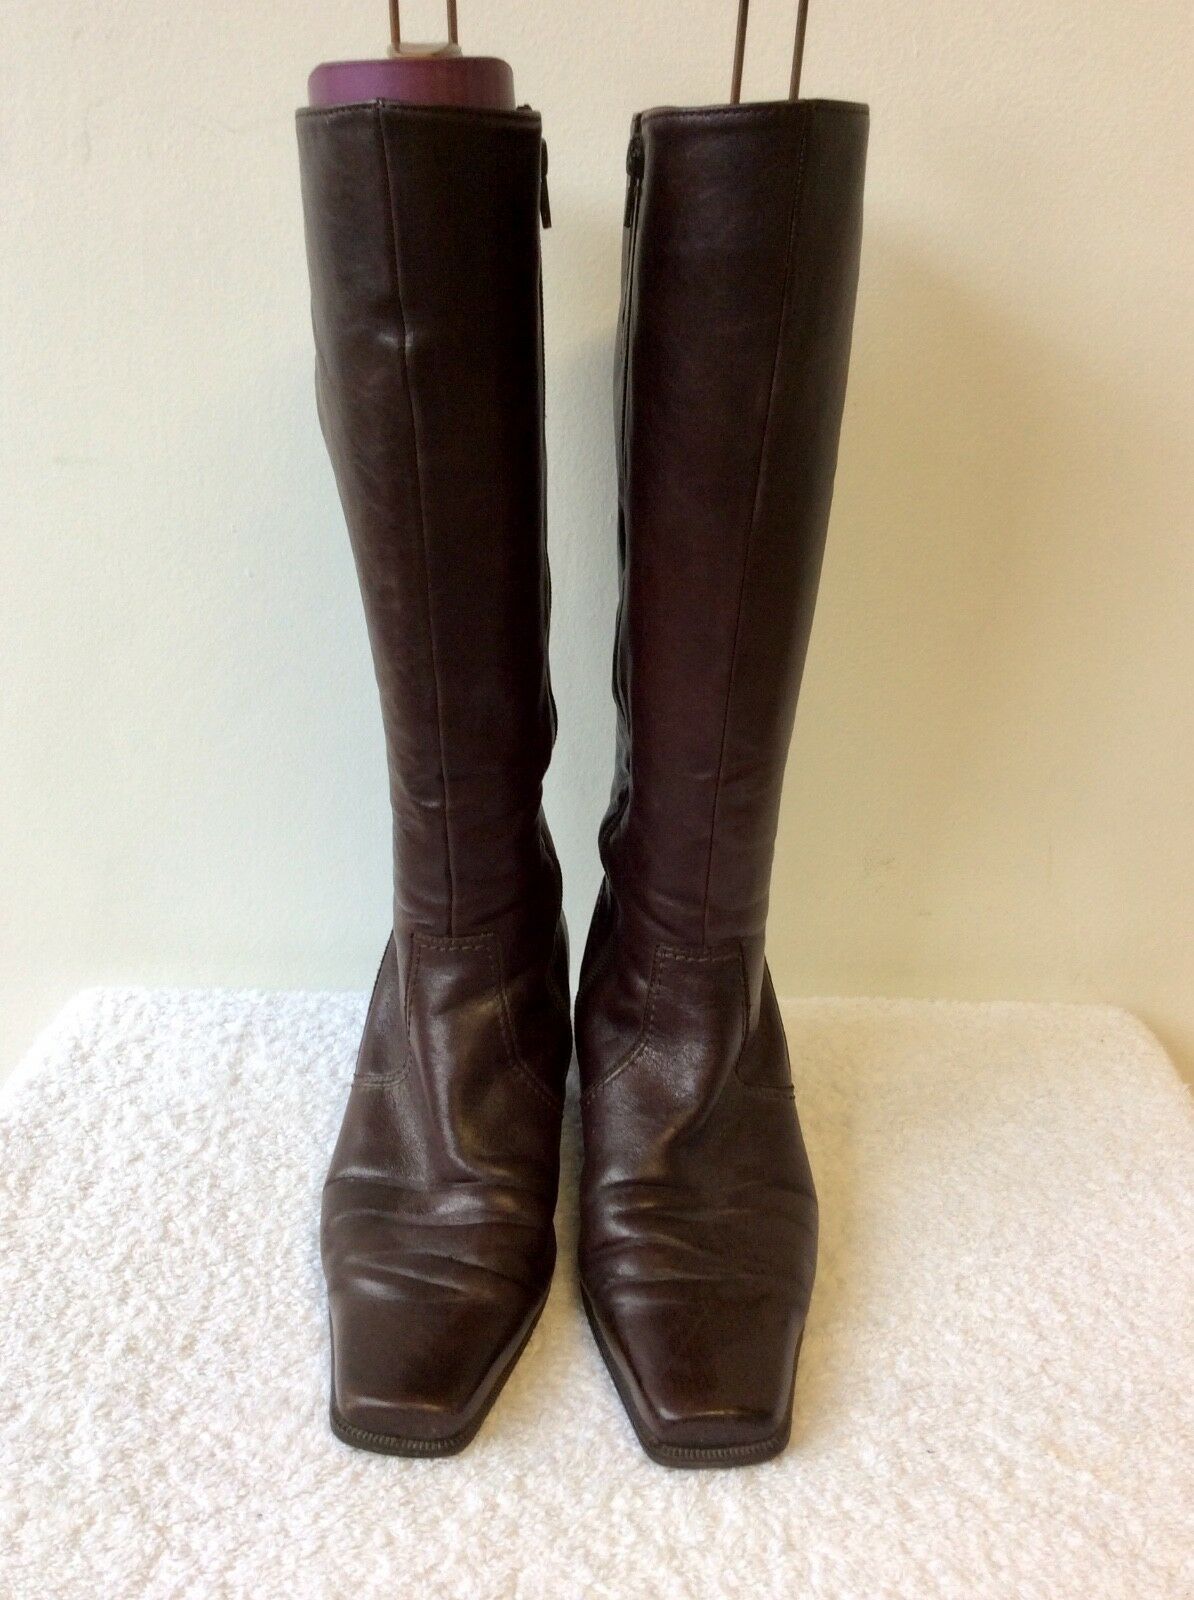 GABOR BROWN LEATHER KNEE LENGTH BOOTS SIZE 5.5   38.5